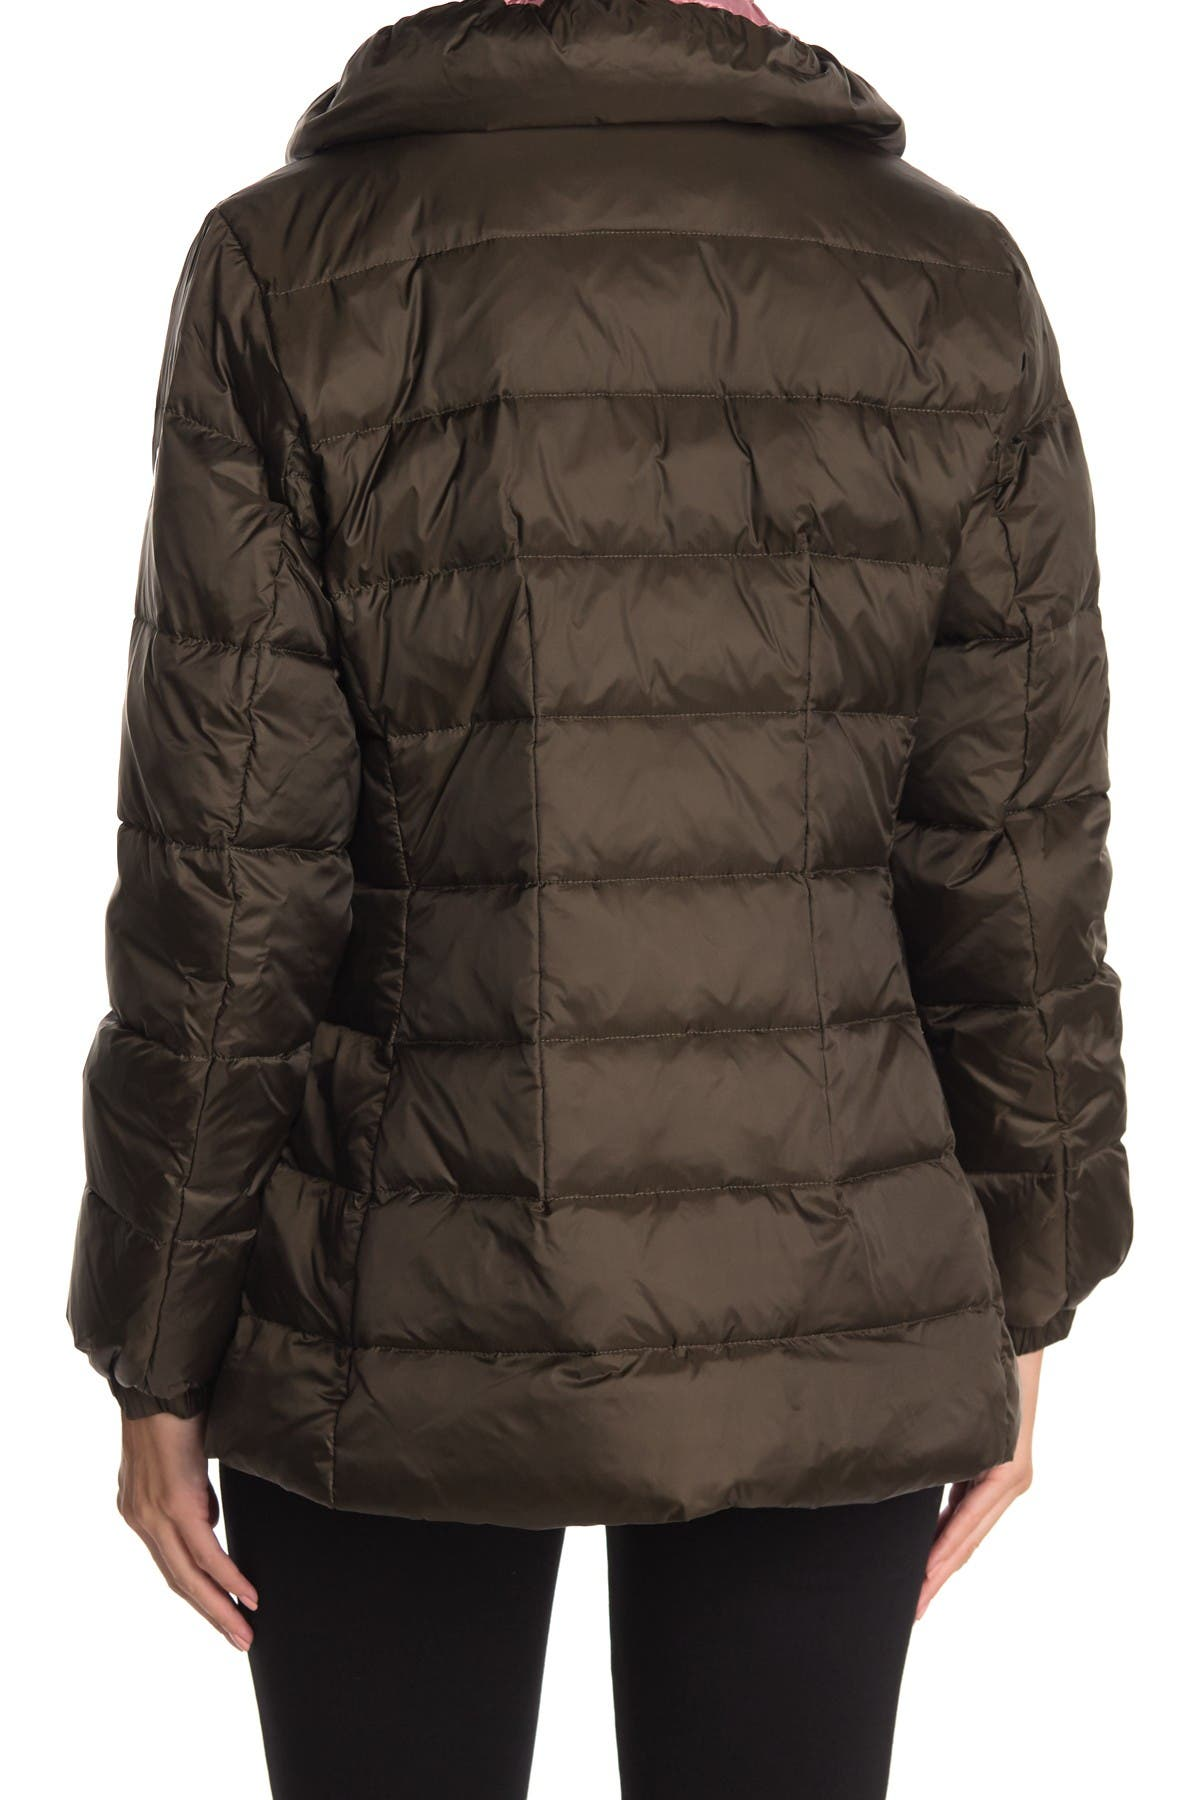 Kate spade new york hooded mid-weight zip down puffer jacket